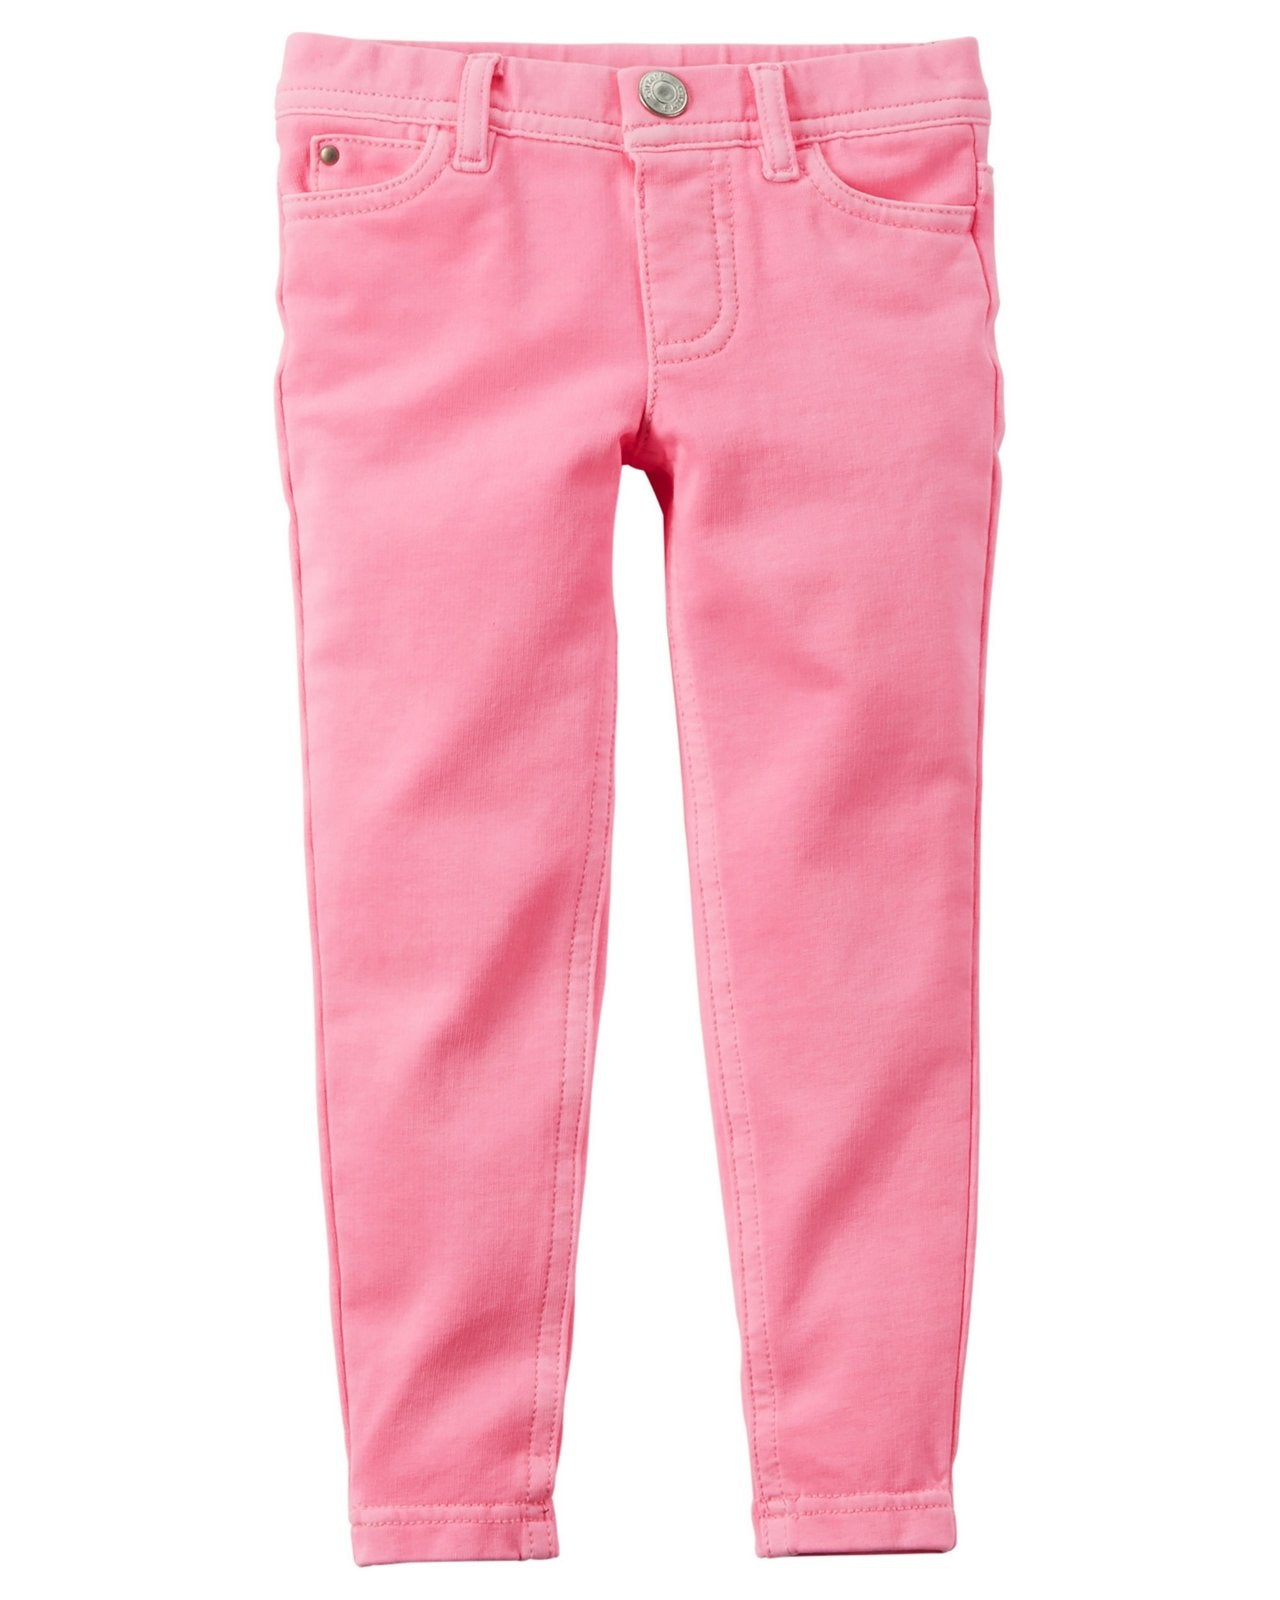 Carter's Neon French Terry Jeggings Modelo 258G143